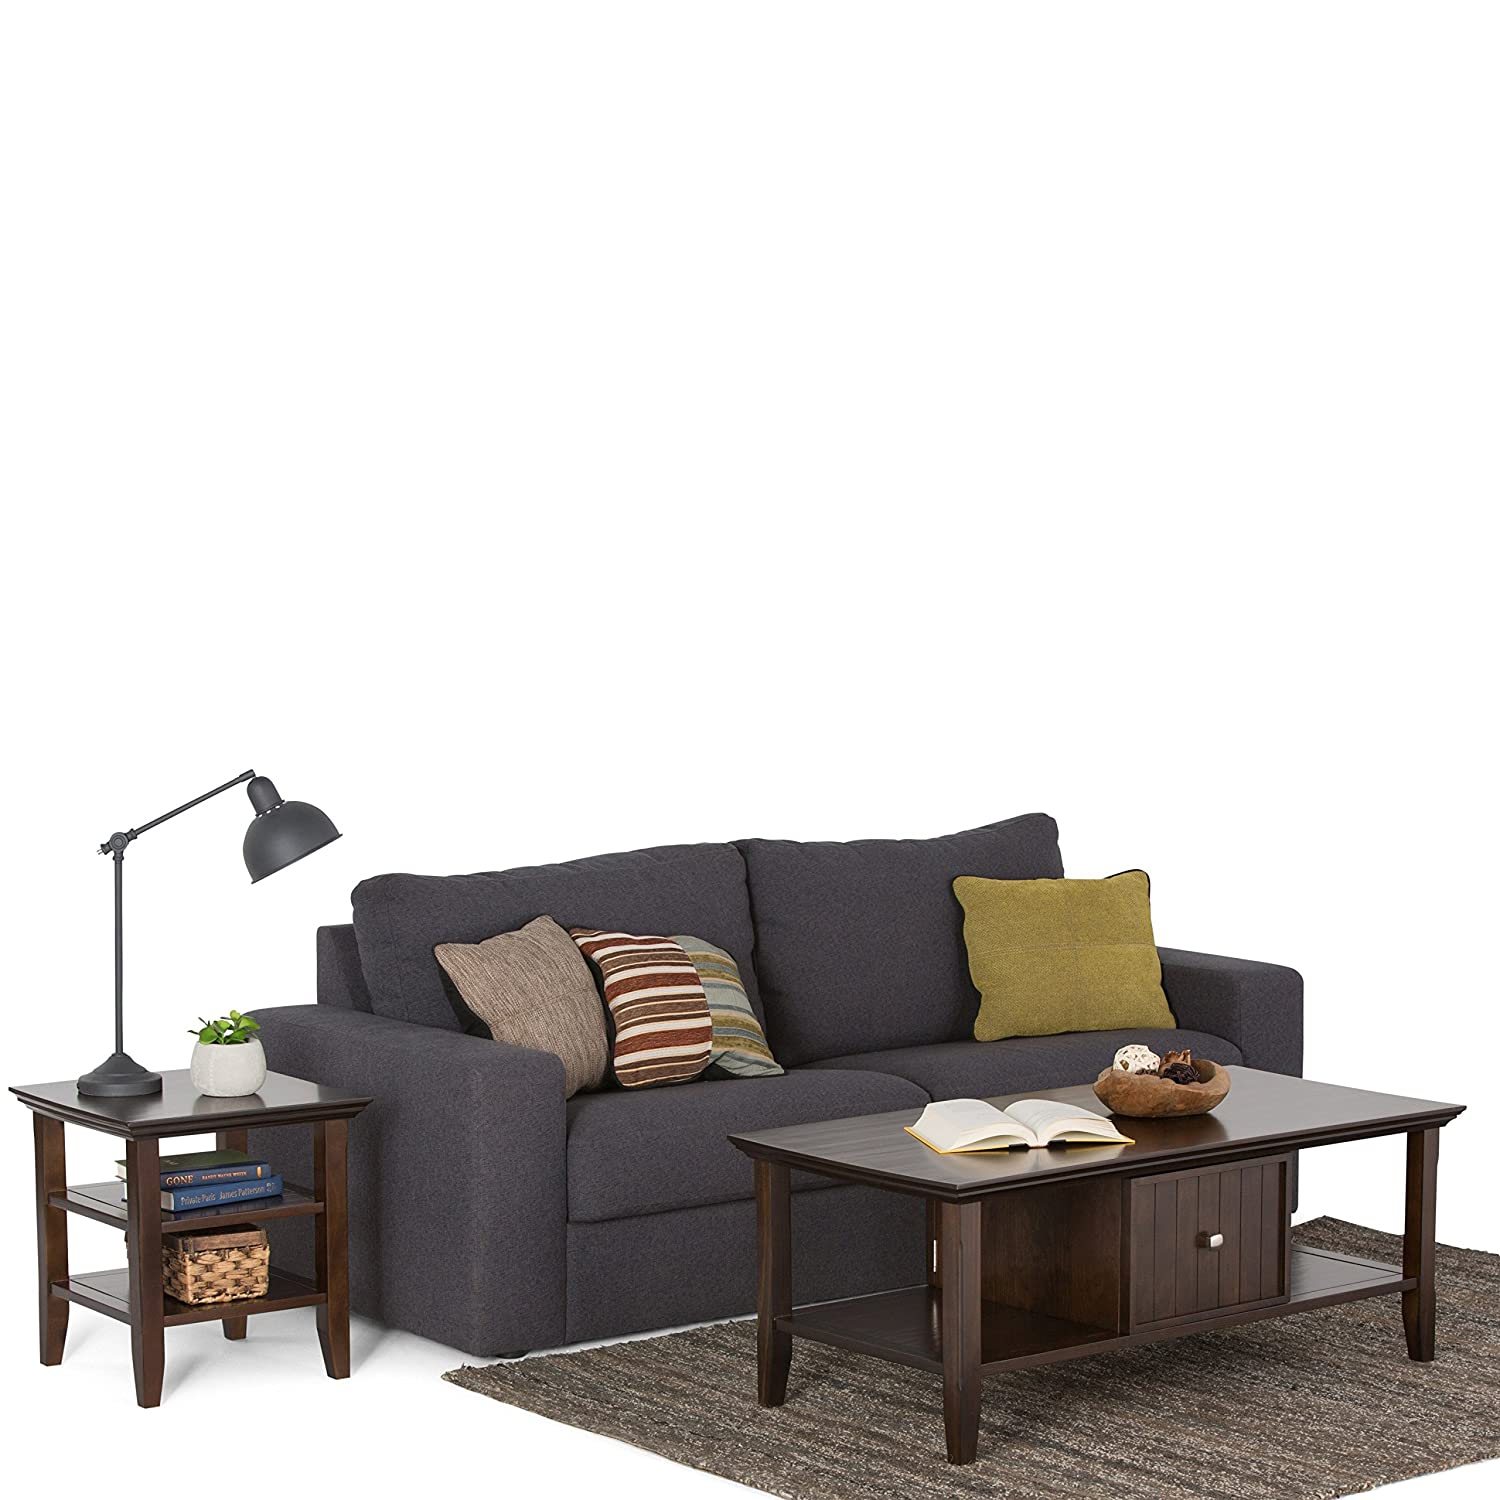 Simpli Home AXWELL3-007 Acadian Solid Wood 36 inch wide Square Rustic Square Coffee Table in Tobacco Brown Ltd.